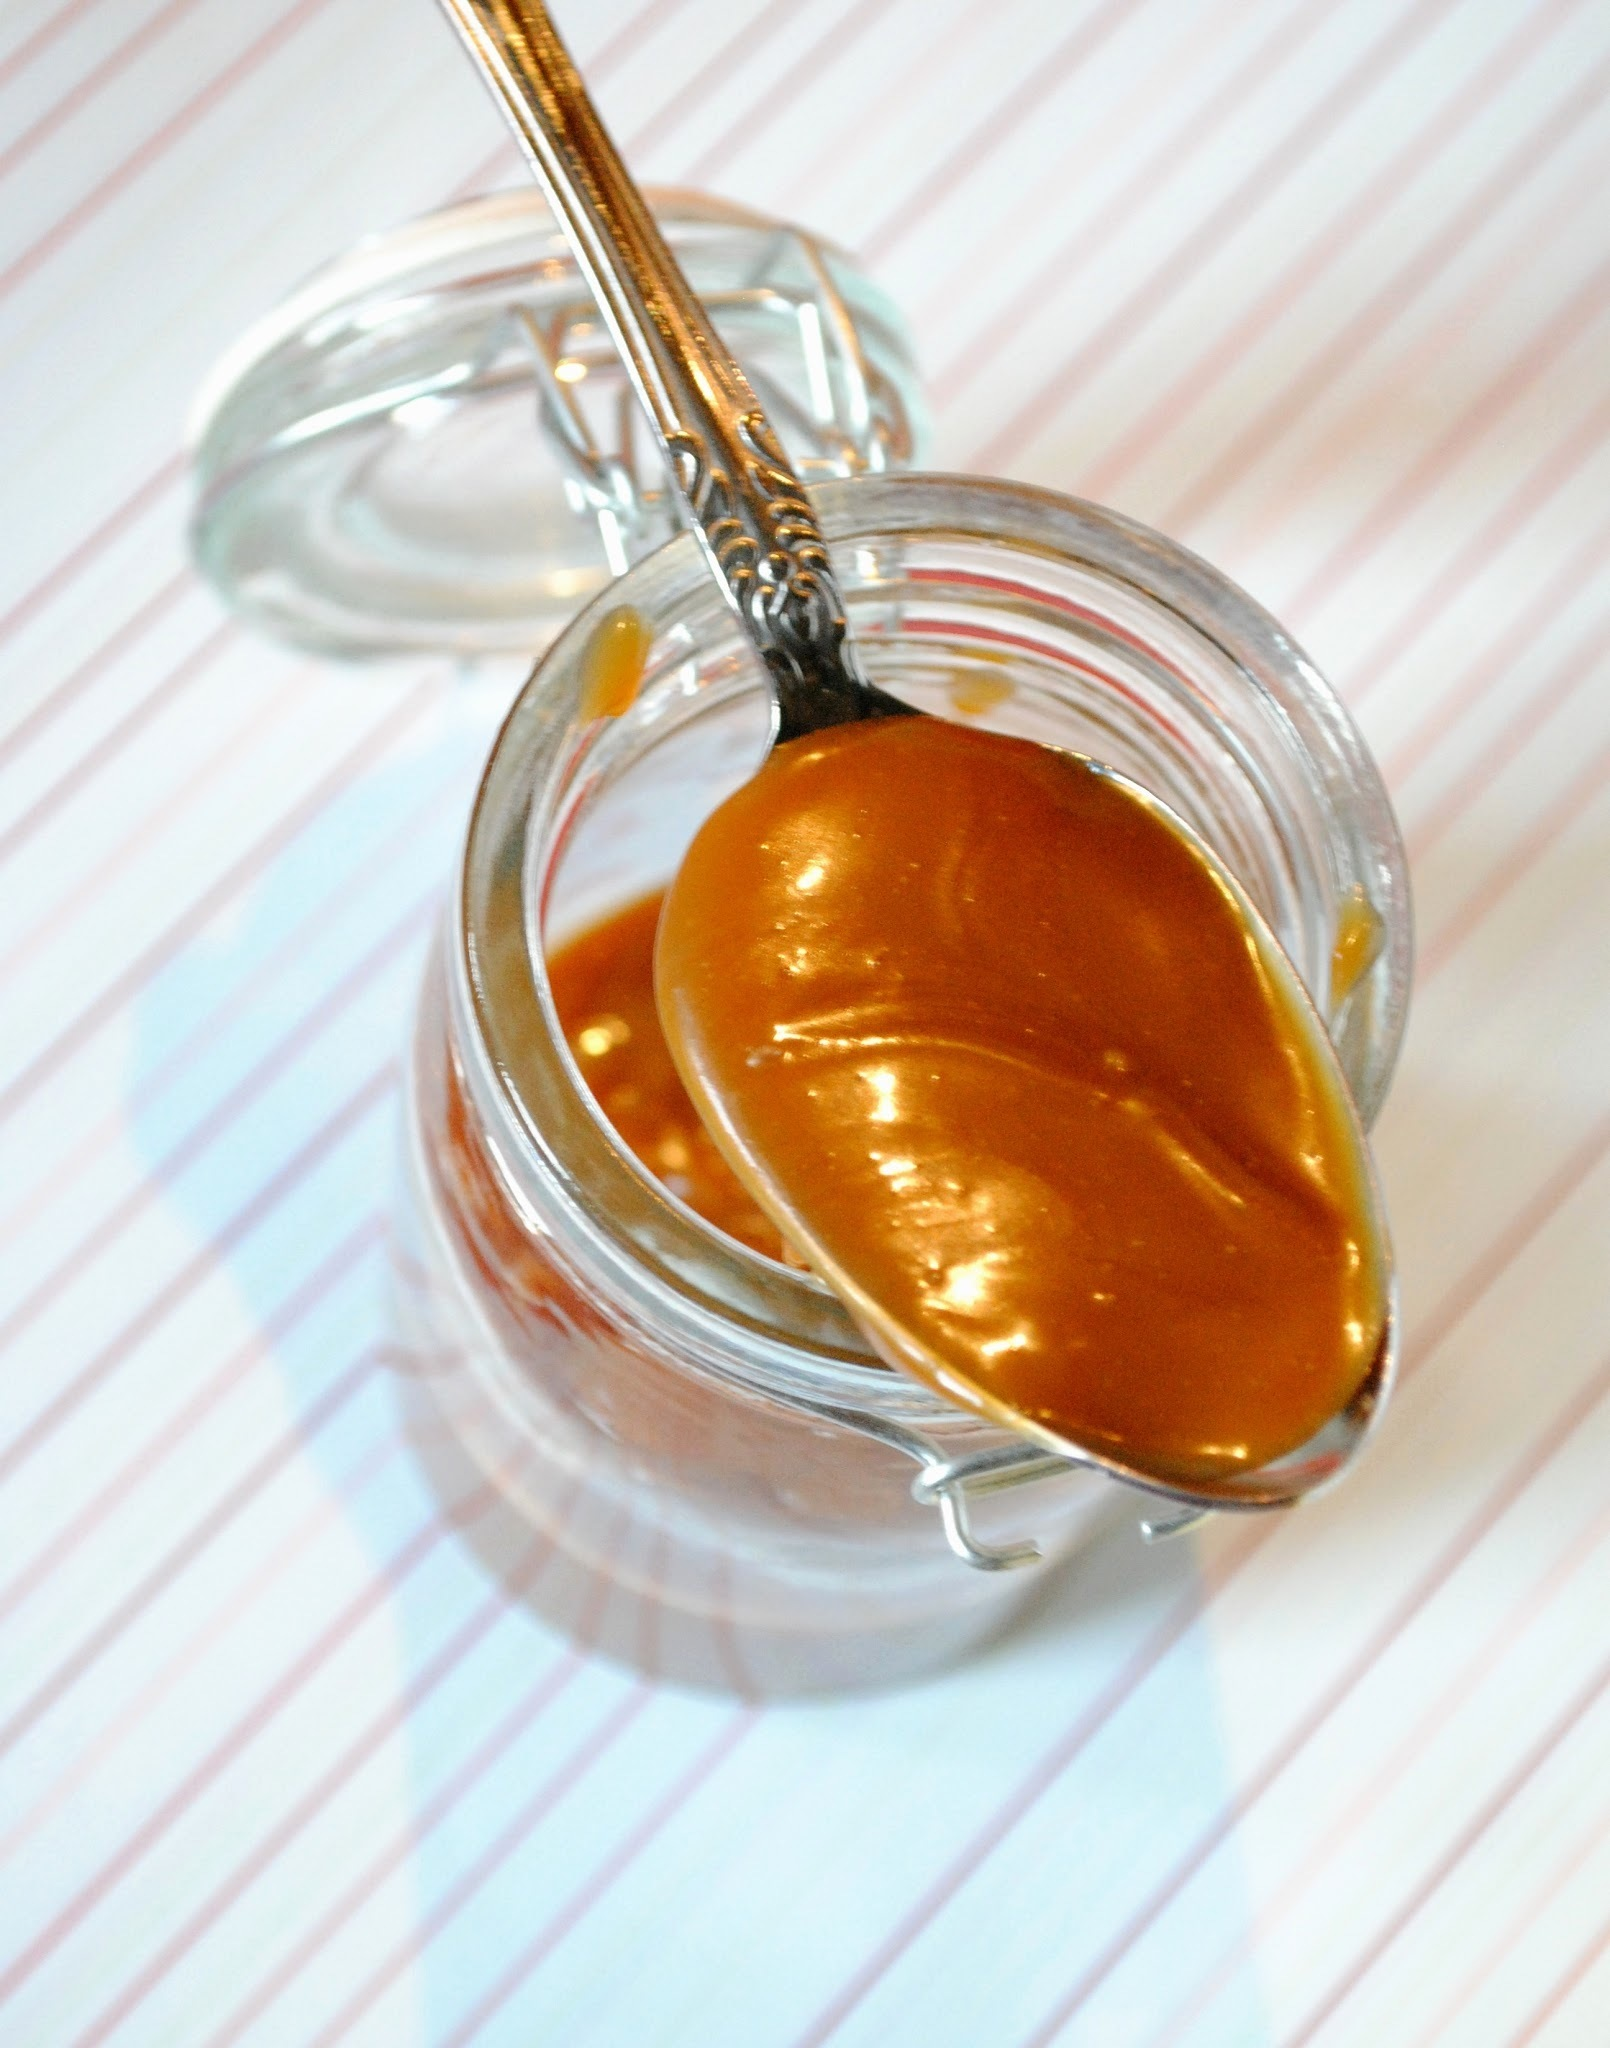 How to: Homemade Salted Caramel Sauce